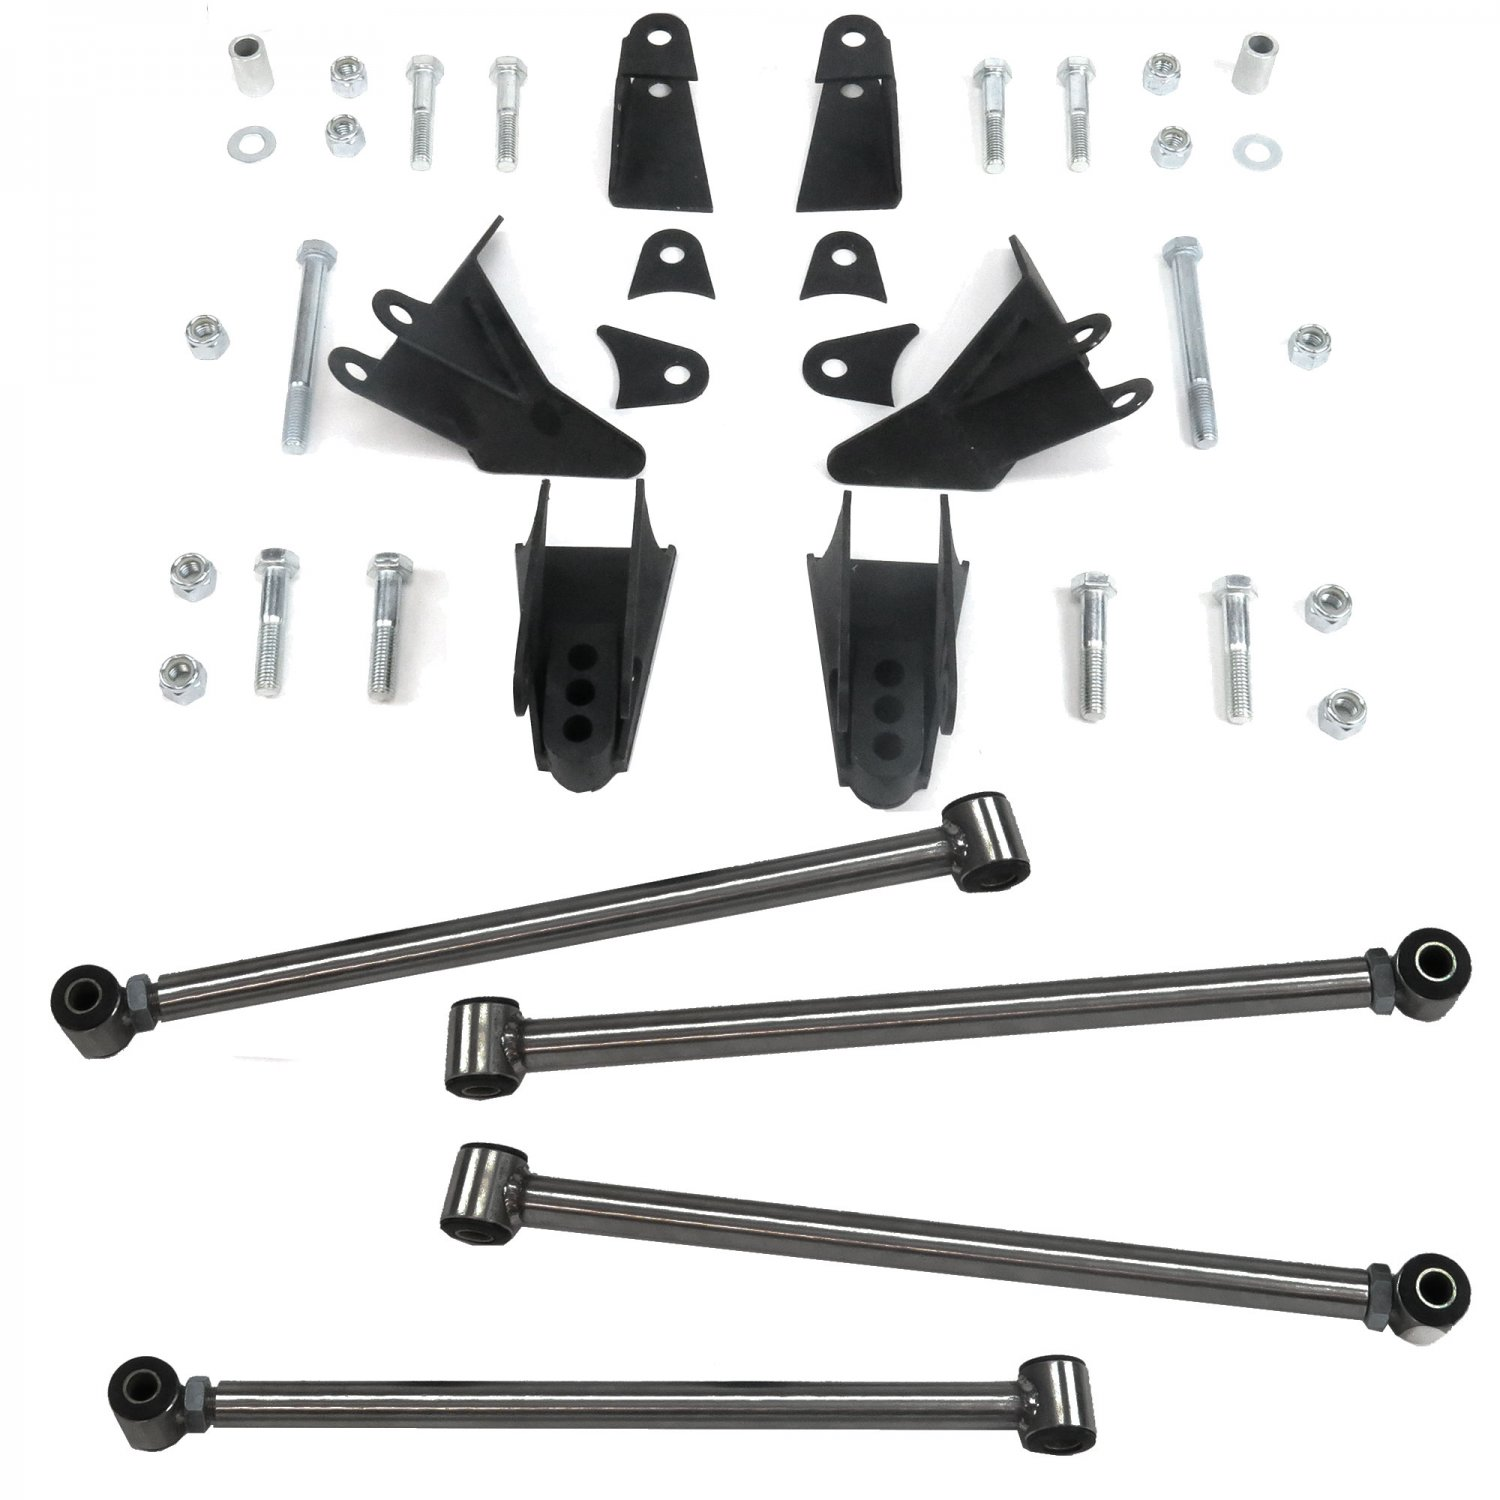 Chevy S10 Blazer 1995 2005 Heavy Duty Triangulated 4 Link Kit 1966 Lifted Muscle Cars